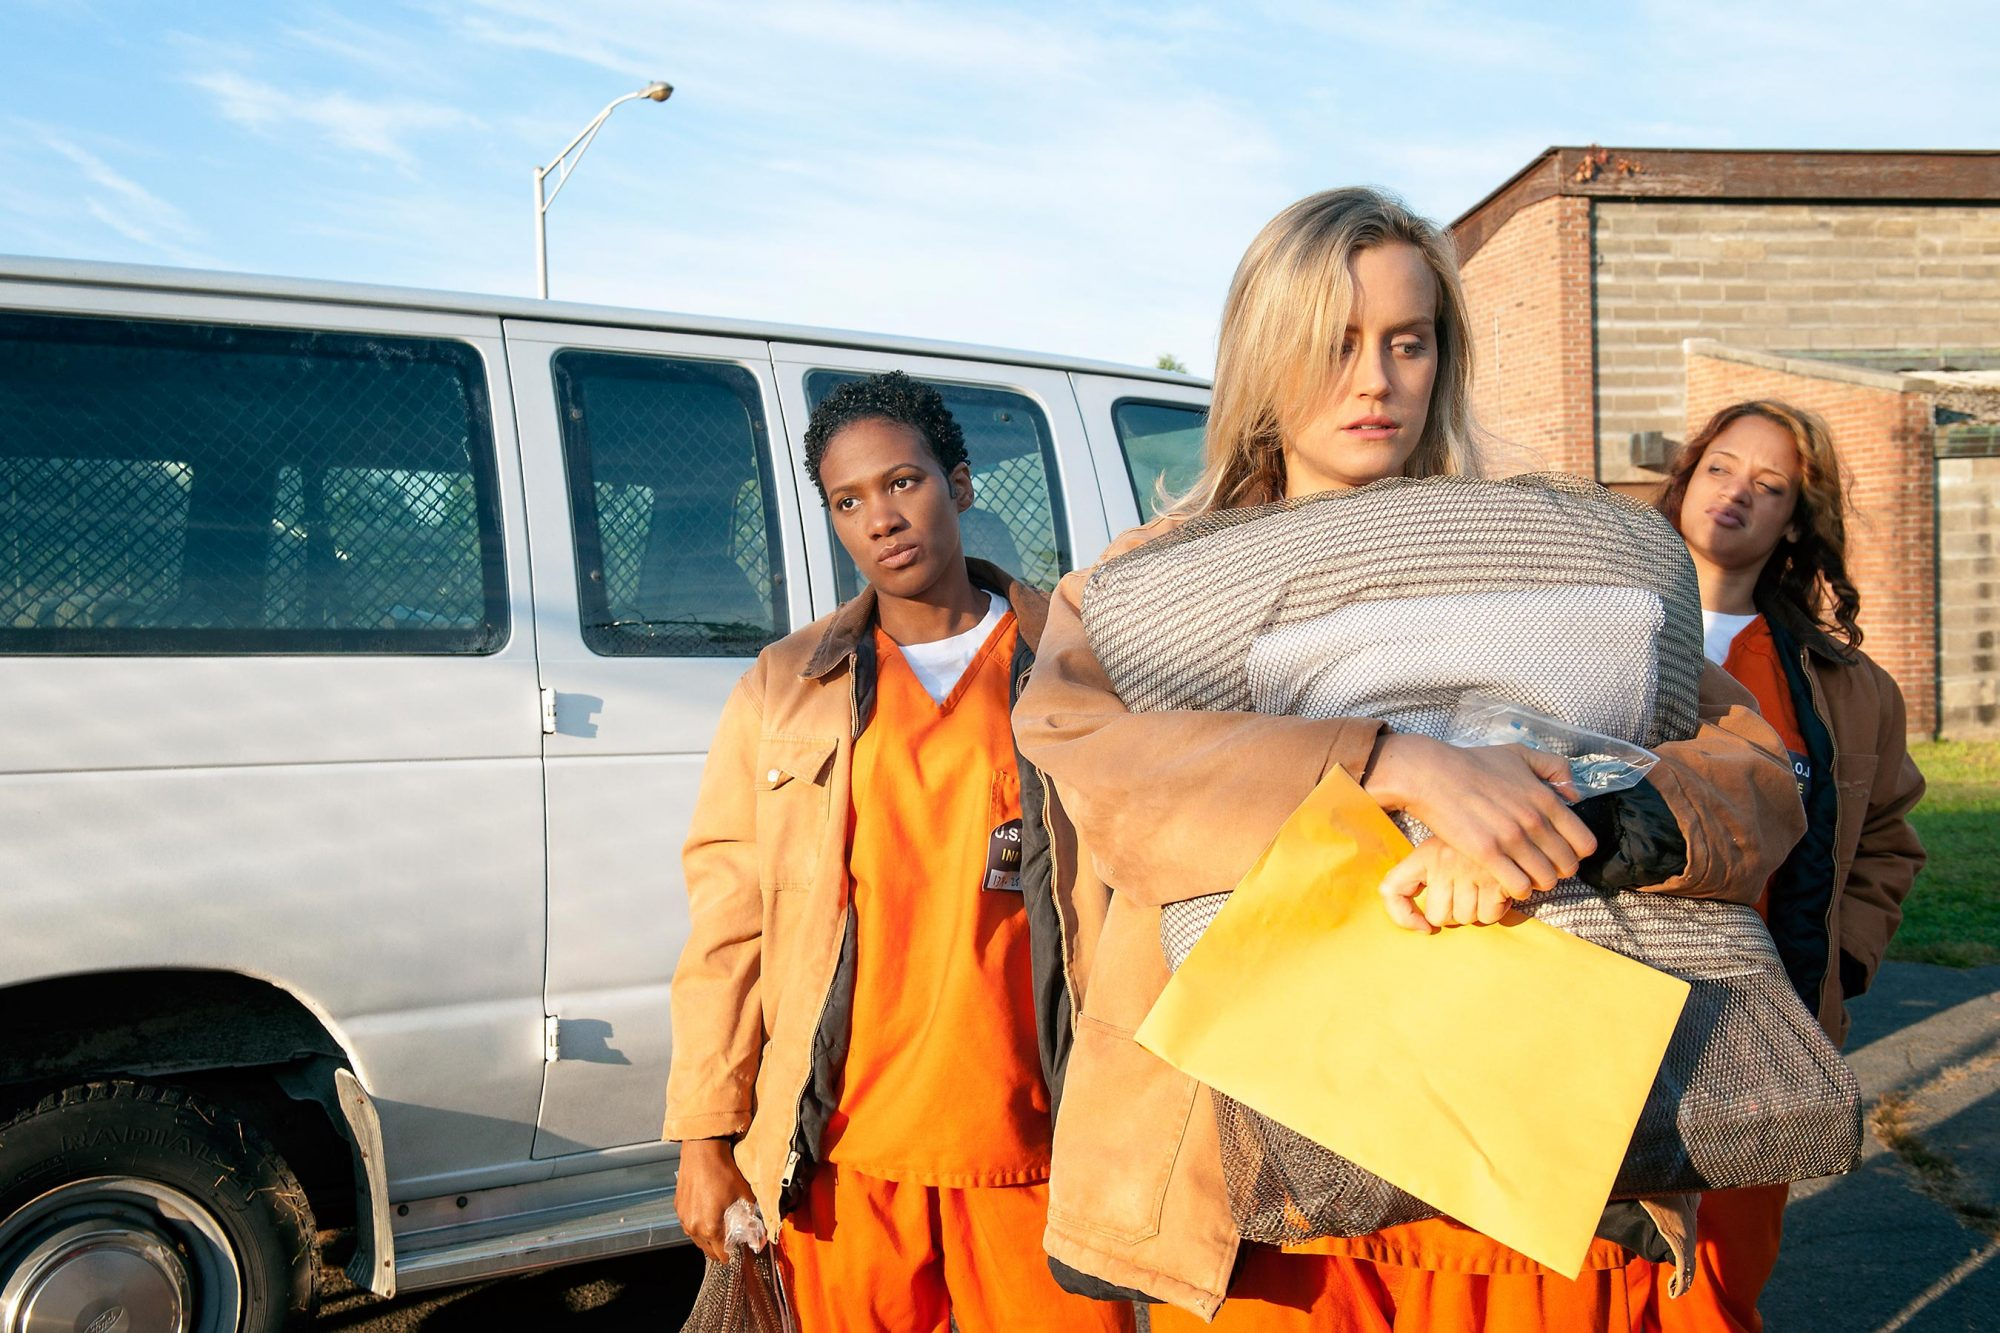 """Orange is the new black """"I Wasn't Ready"""" Season 1 Episode 1 July 11, 2013 Taylor Schilling (front), Vicky Jeudy (back left) and Dascha Polanco"""